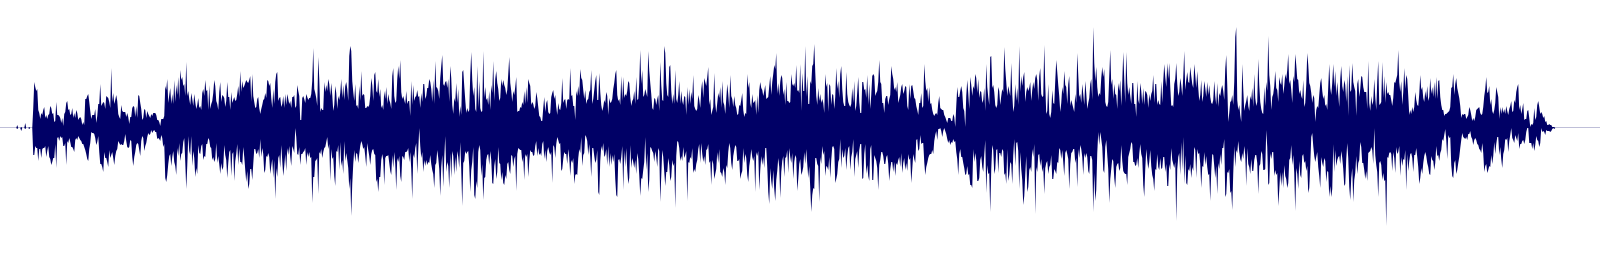 waveform of track #145780